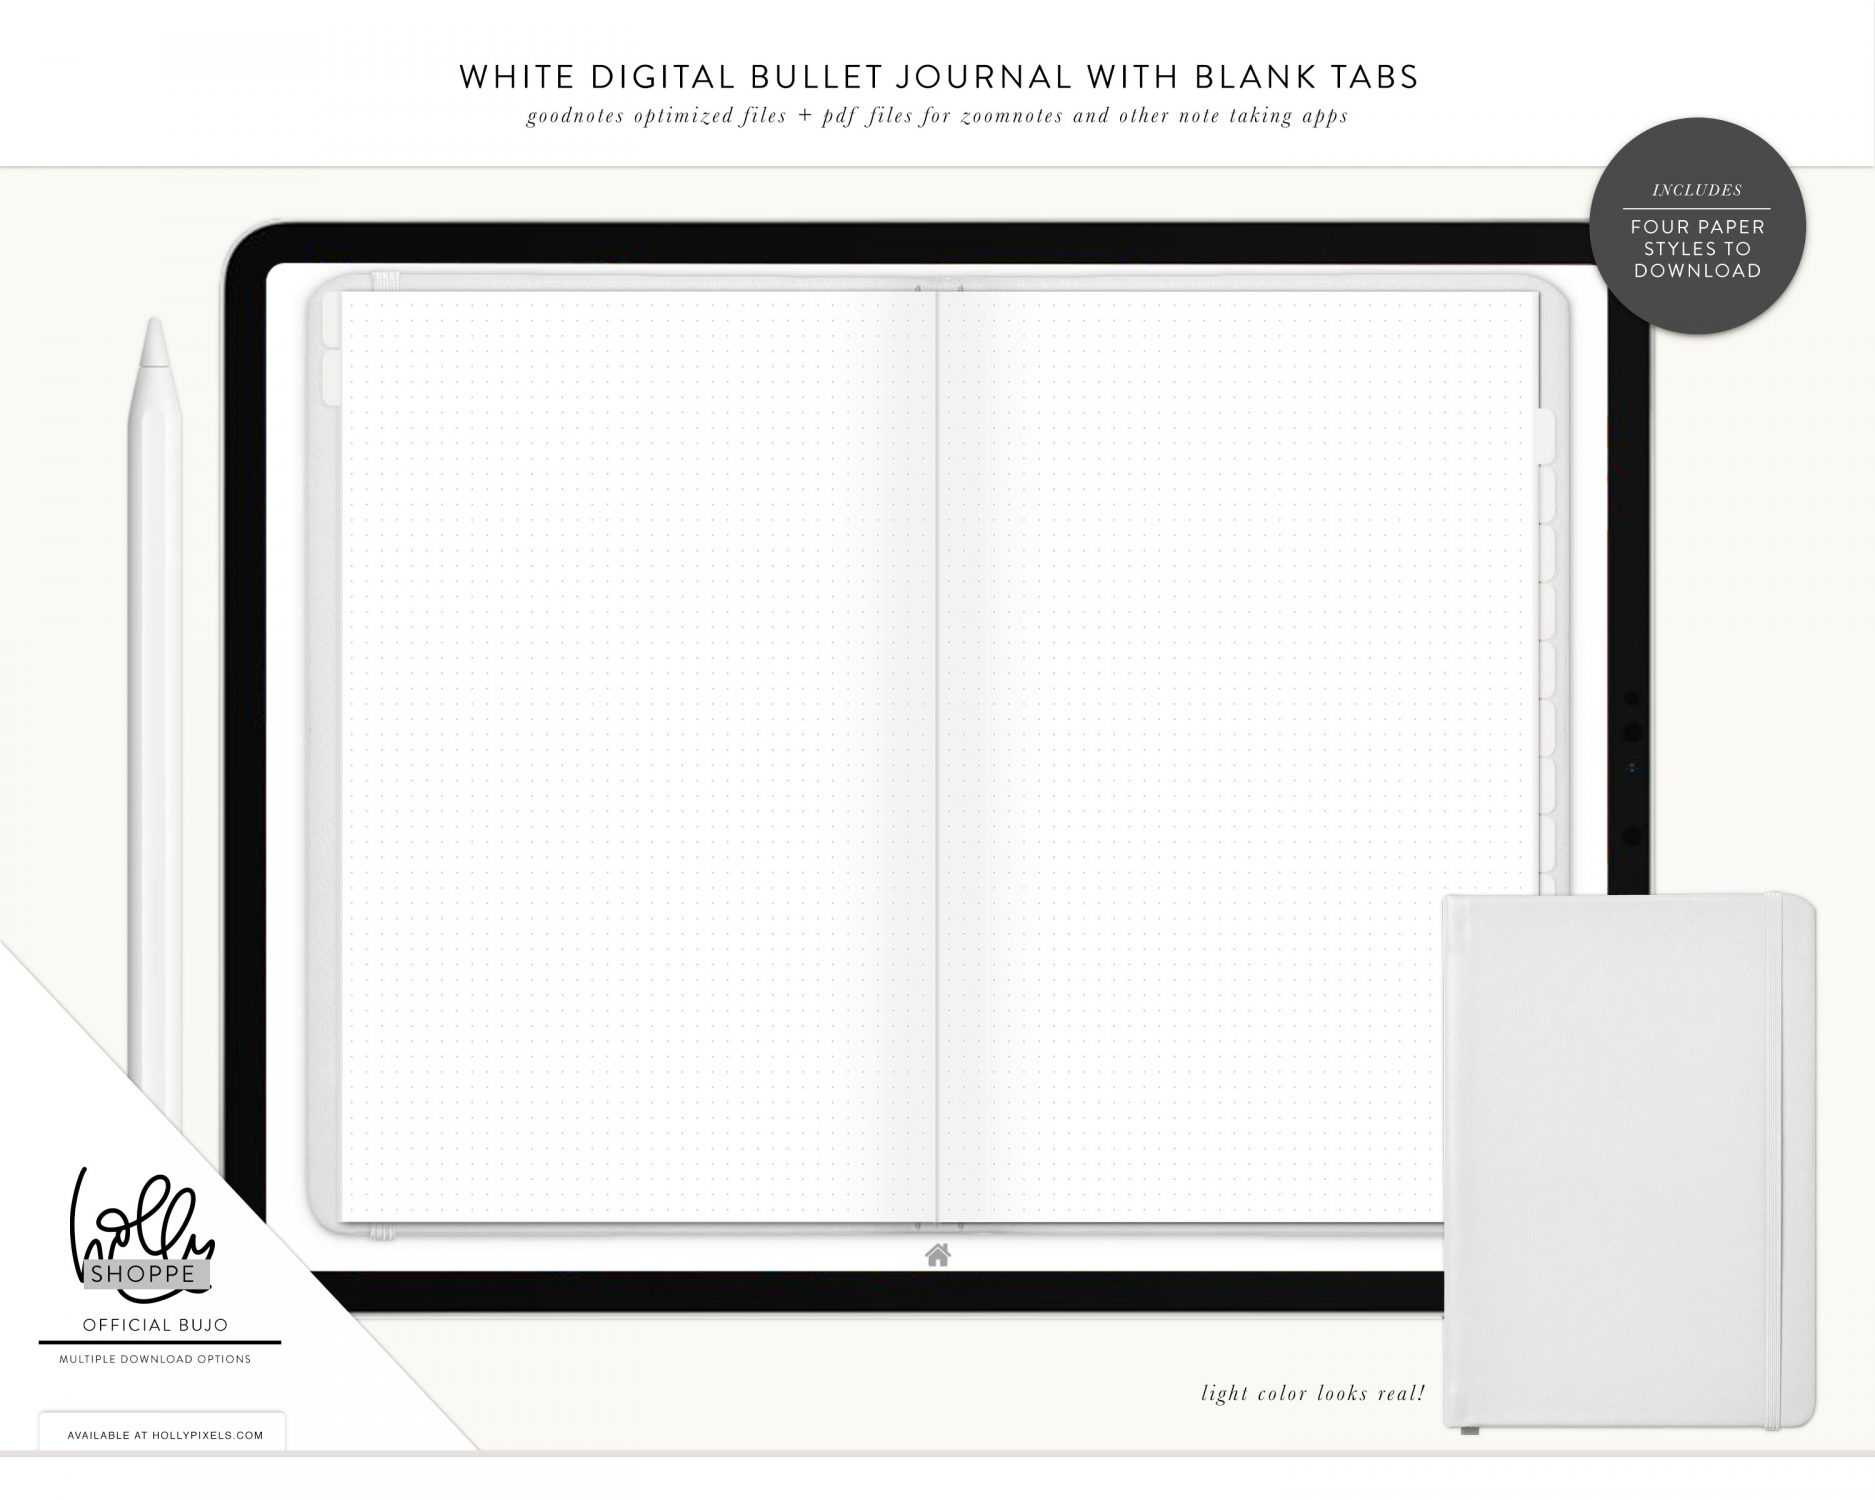 Digital Blank Bullet Journal White Cover By Holly Pixels with regard to Blank Instagram Template 2018